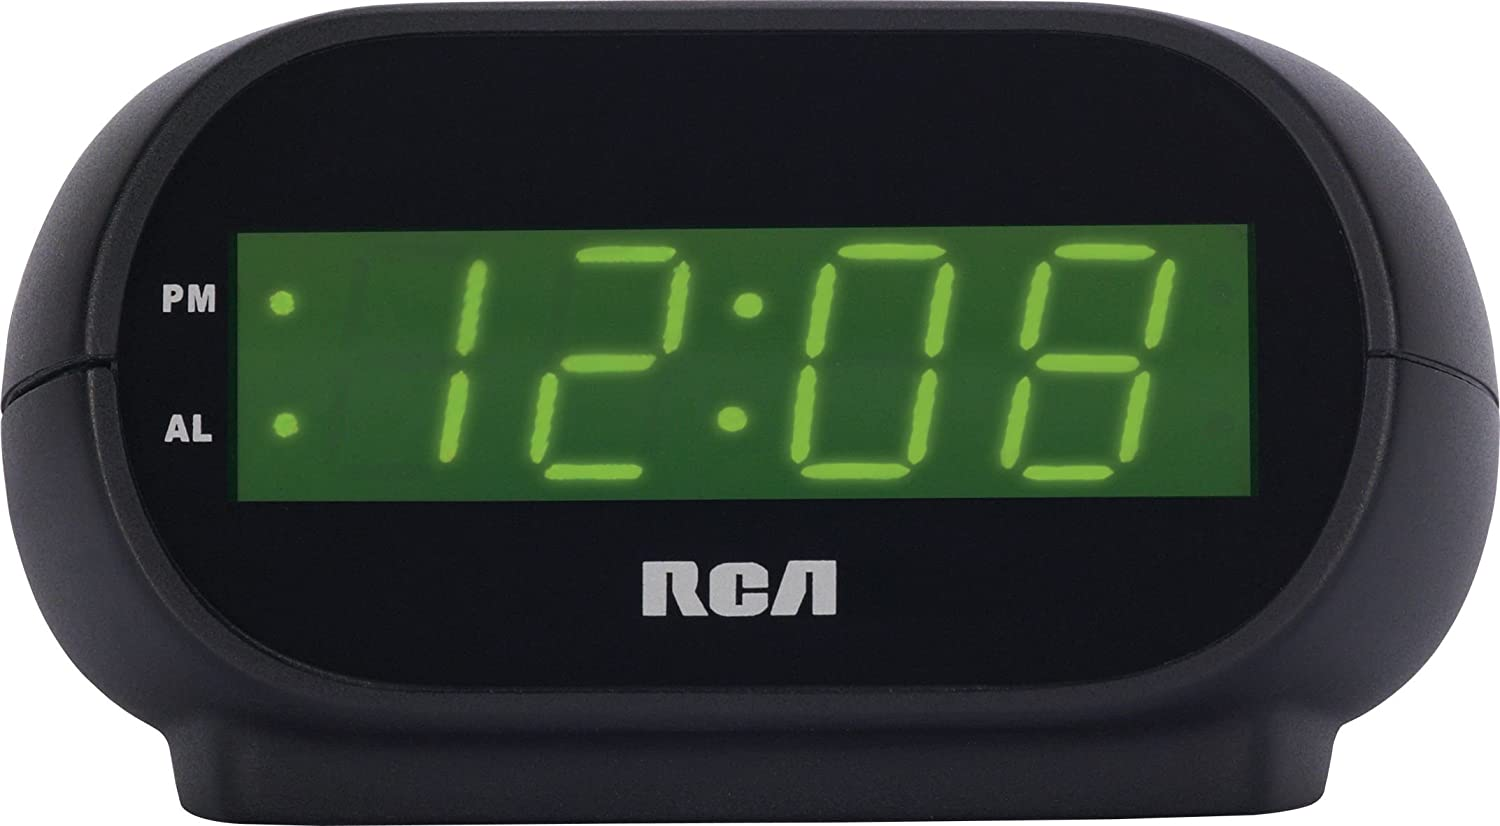 RCA Digital Alarm Clock with Night Light RCD20